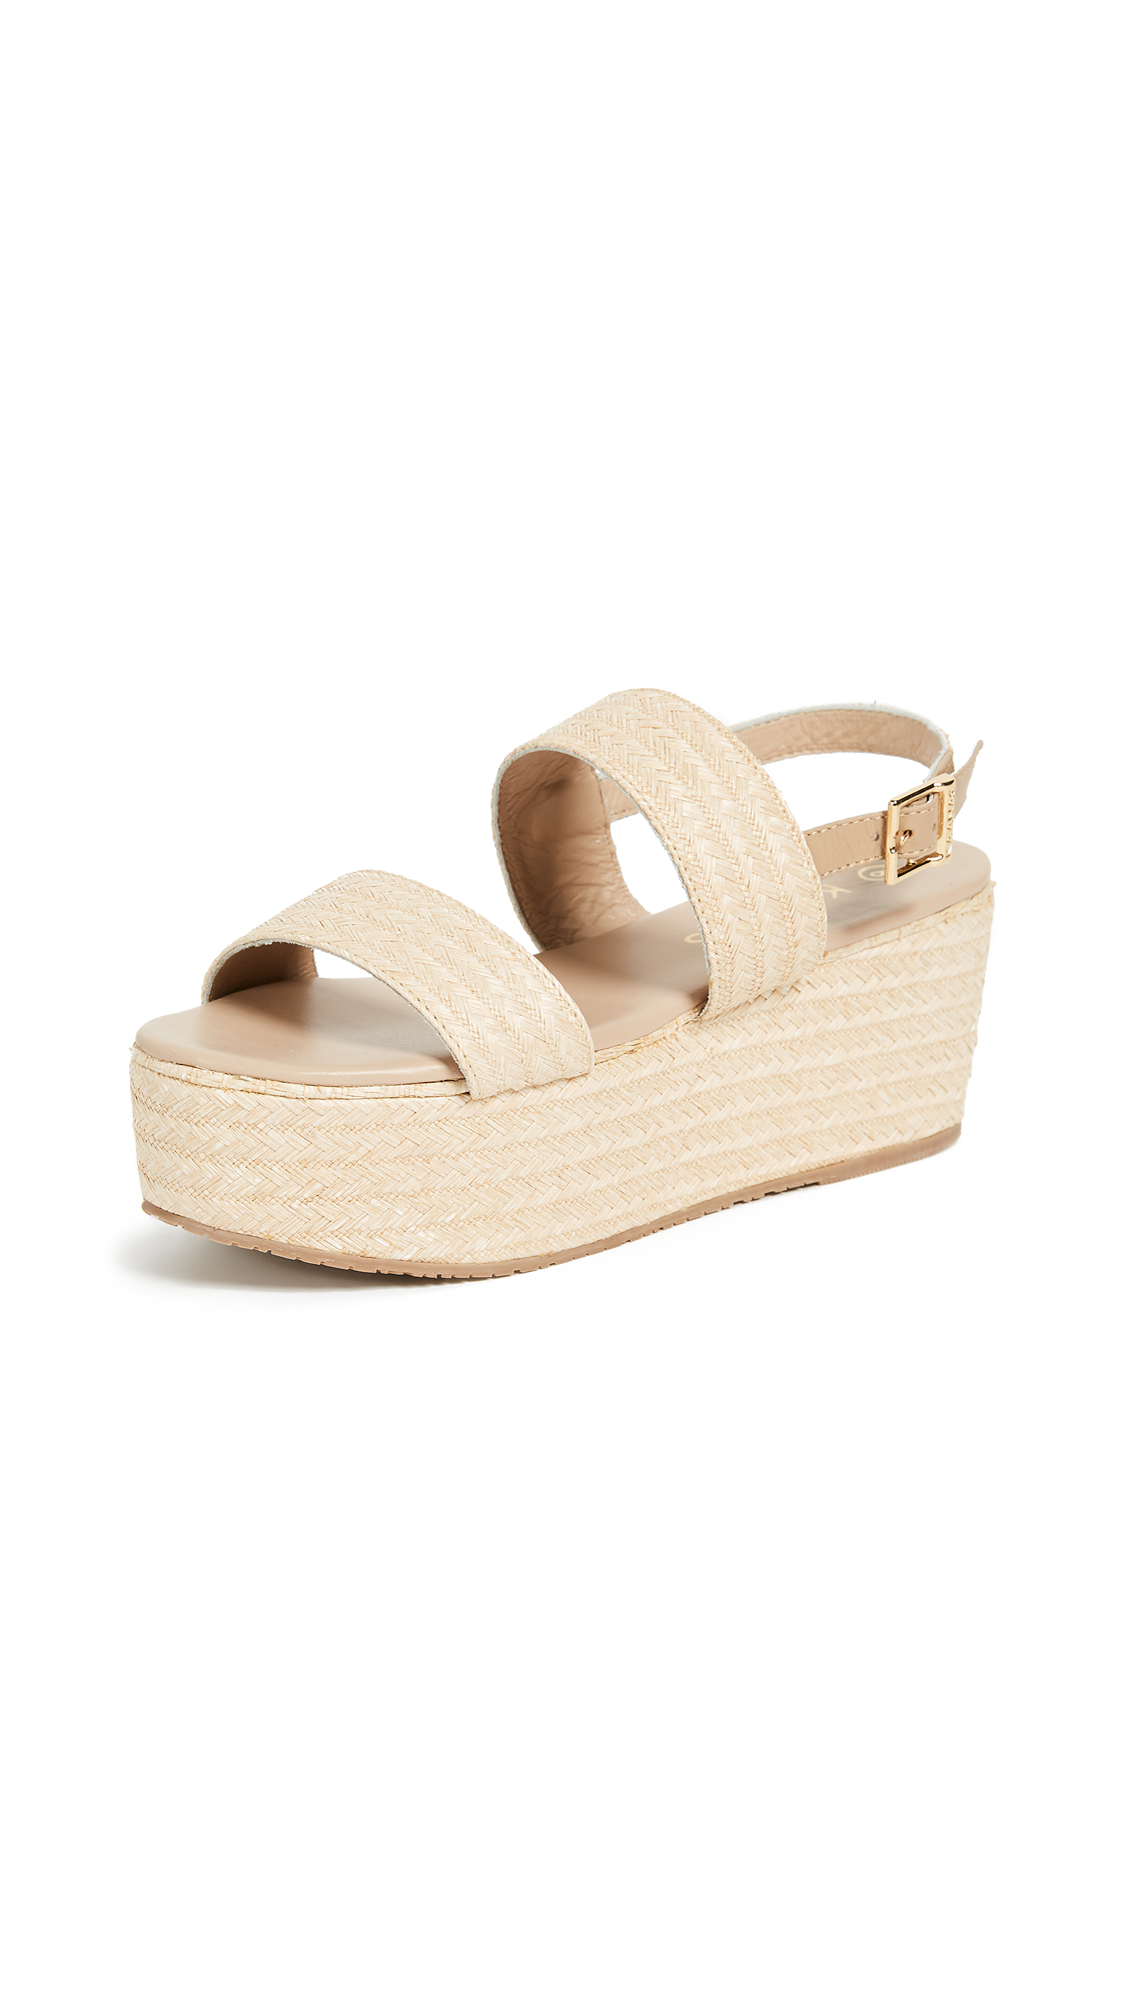 KAANAS Goa Raffia Sandals - Natural